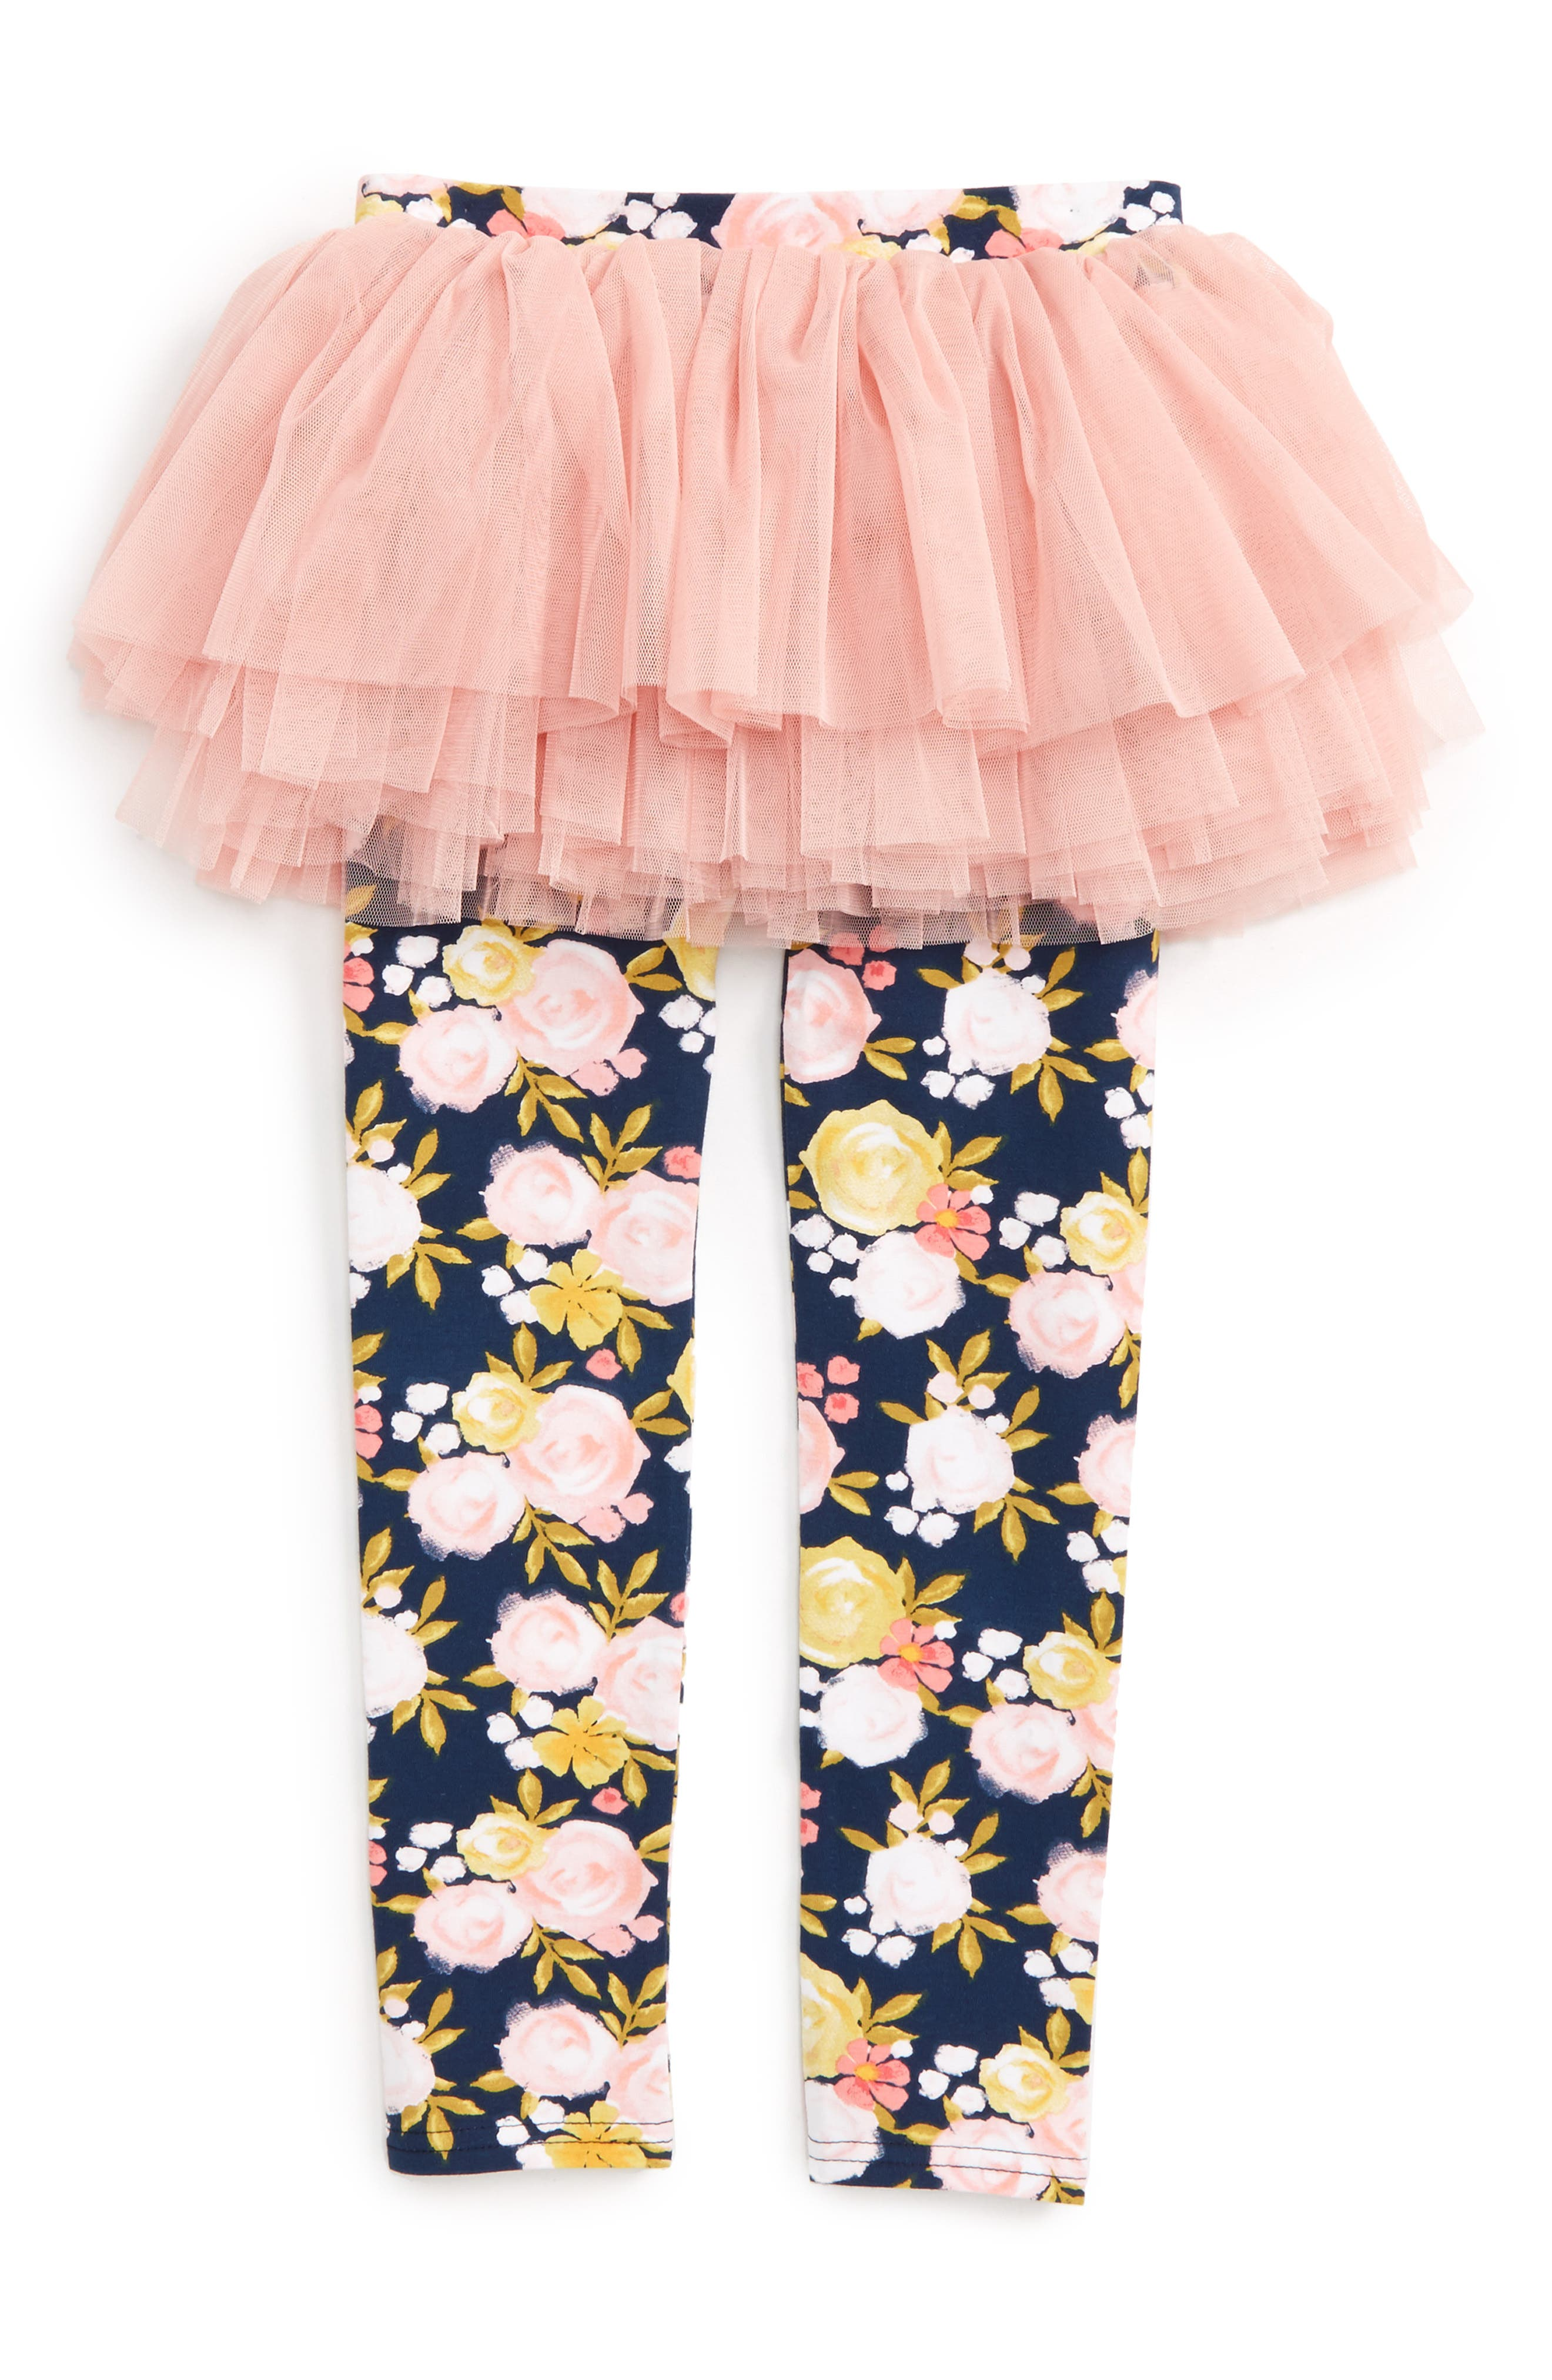 ROCK YOUR BABY Painted Garden Skirted Tights